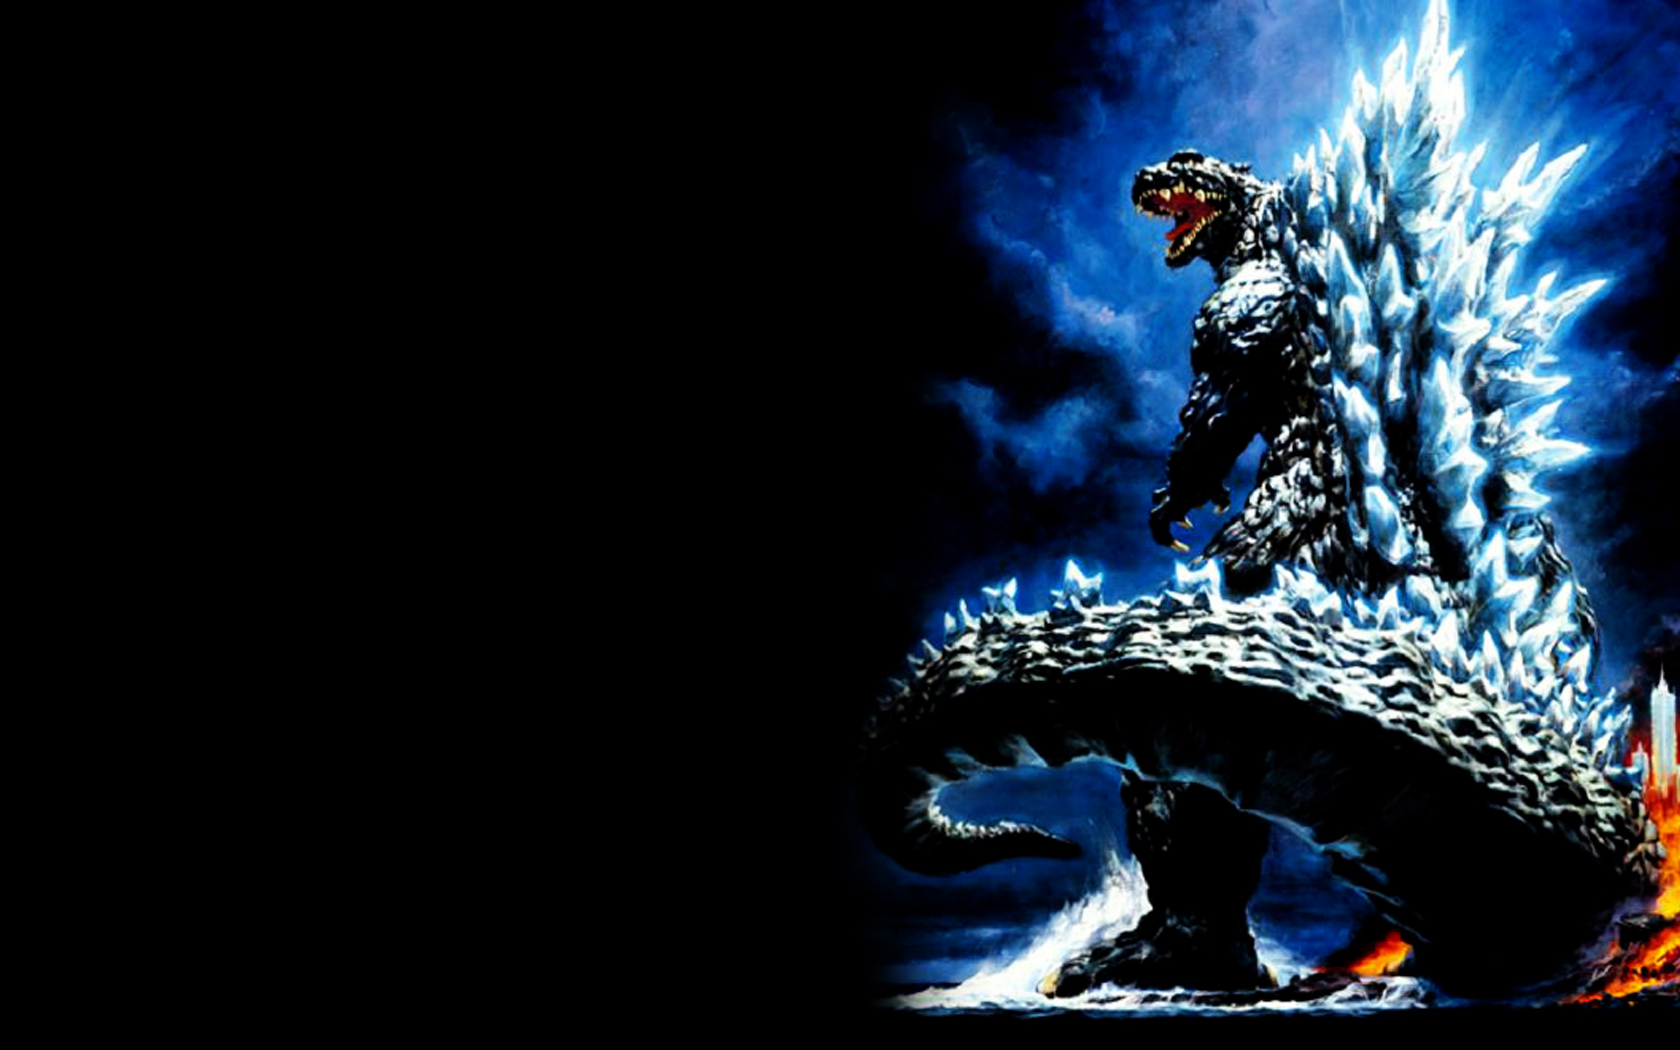 Godzilla Wallpaper 6 by ~Spitfire666xXxXx on deviantART